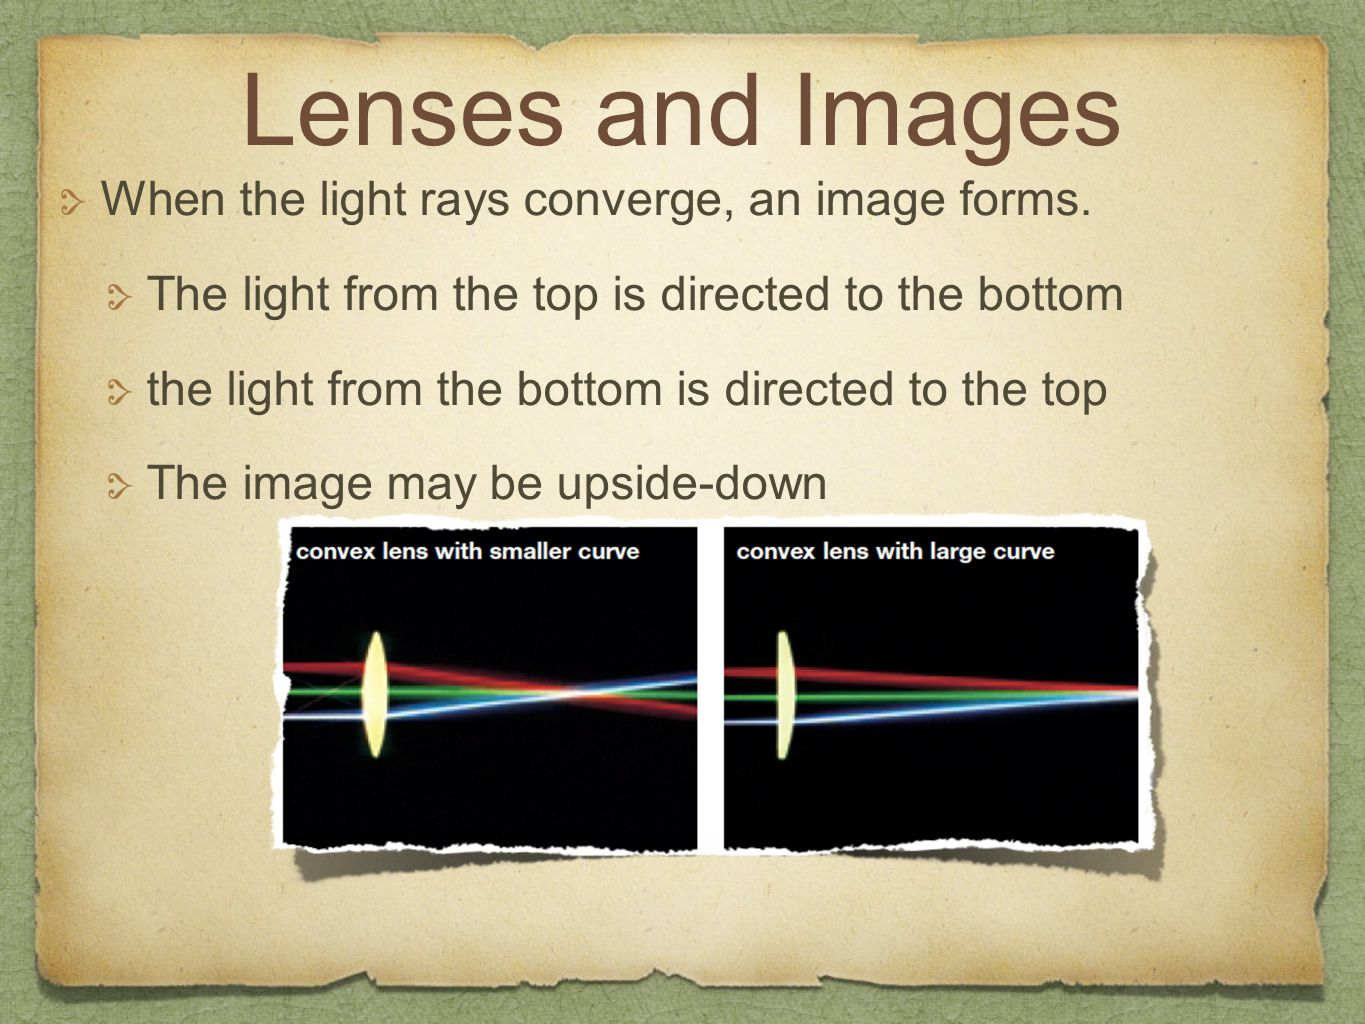 Lenses and Images When the light rays converge, an image forms. The light from the top is directed to the bottom the light from the bottom is directed